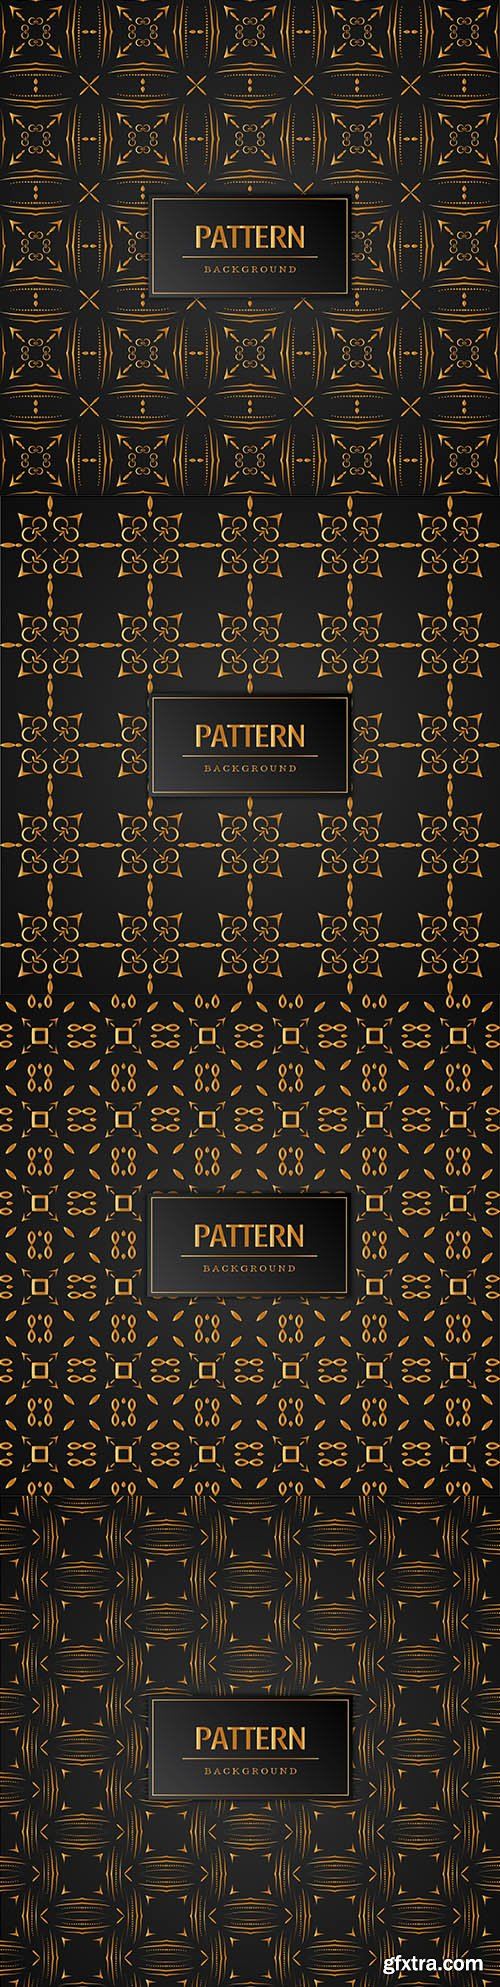 Elegant abstract gold pattern seamless background